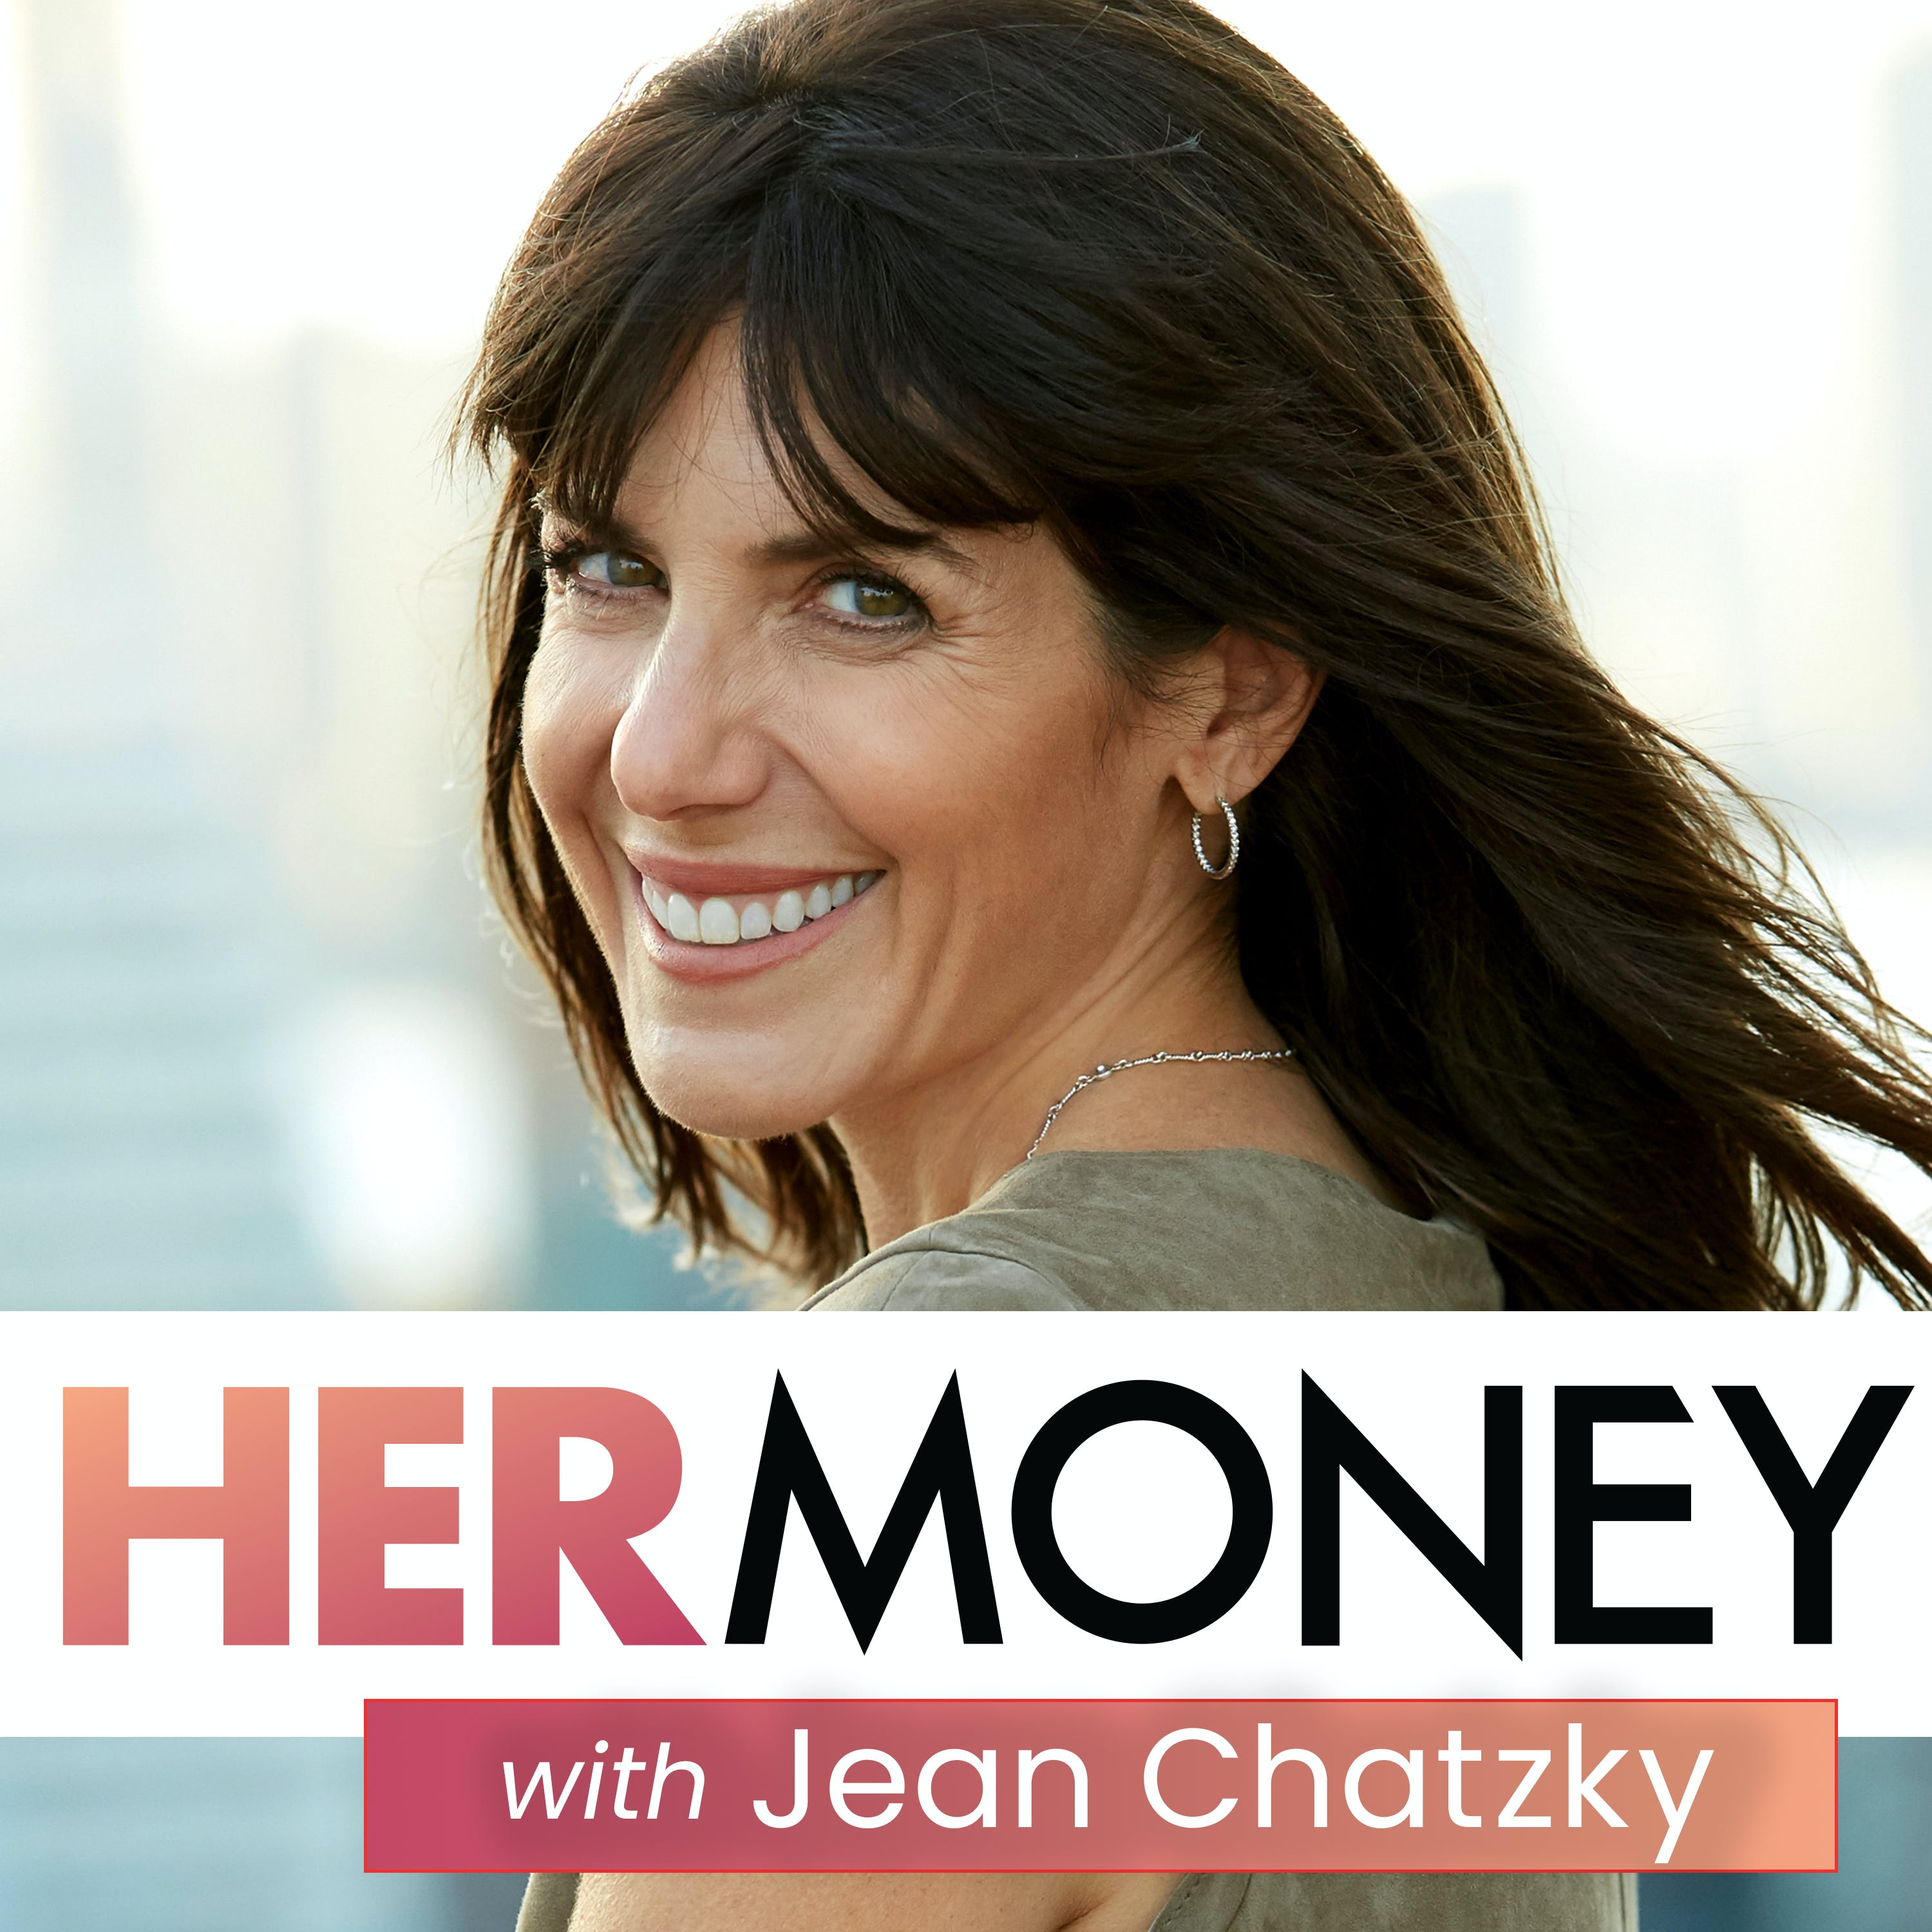 HerMoney with Jean Chatzky Podcast - Listen, Reviews, Charts - Chartable